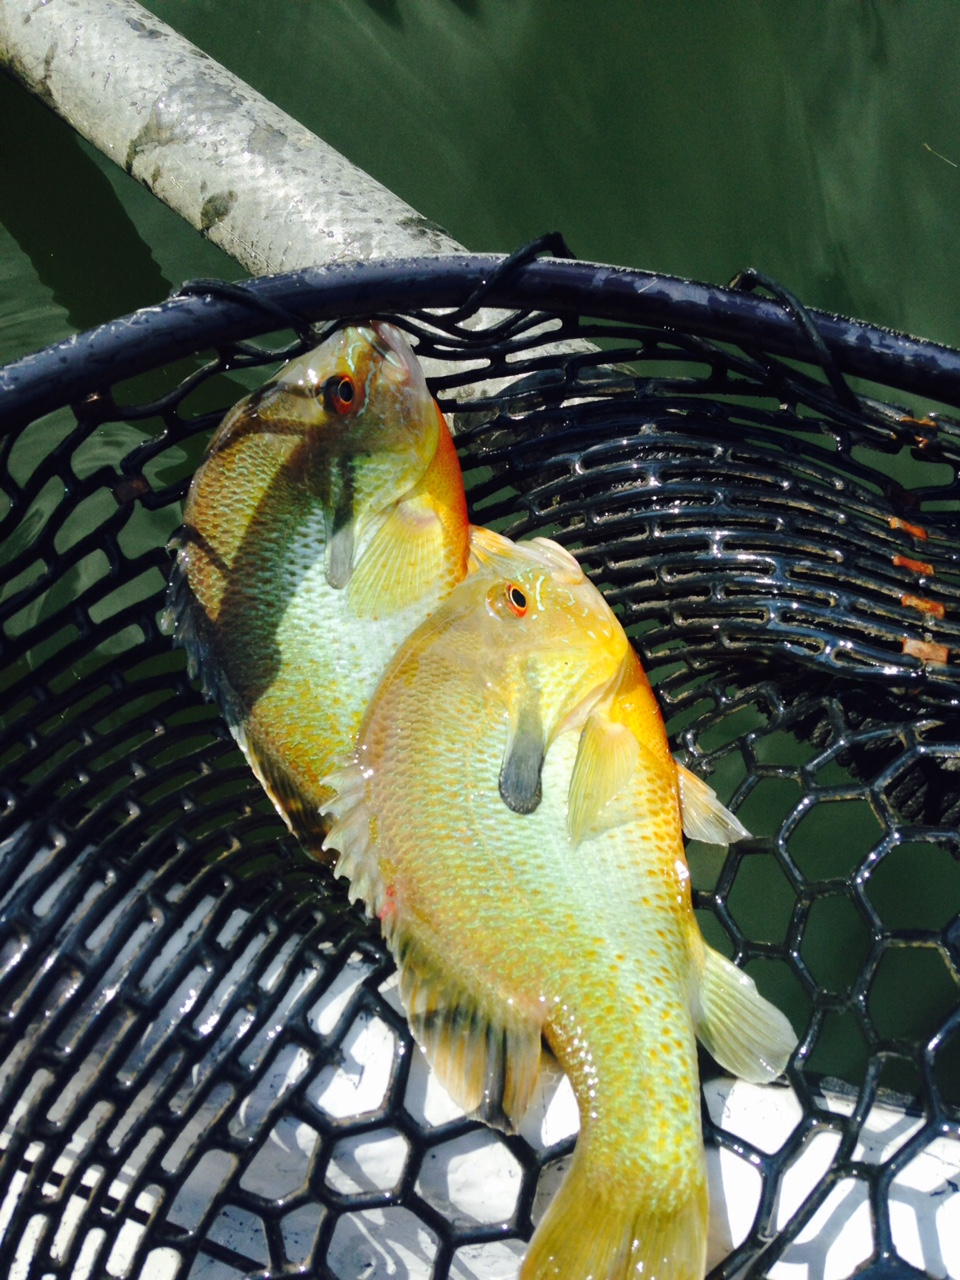 7/10/15  Found 2 river Sunfish, and pulled them out of school.